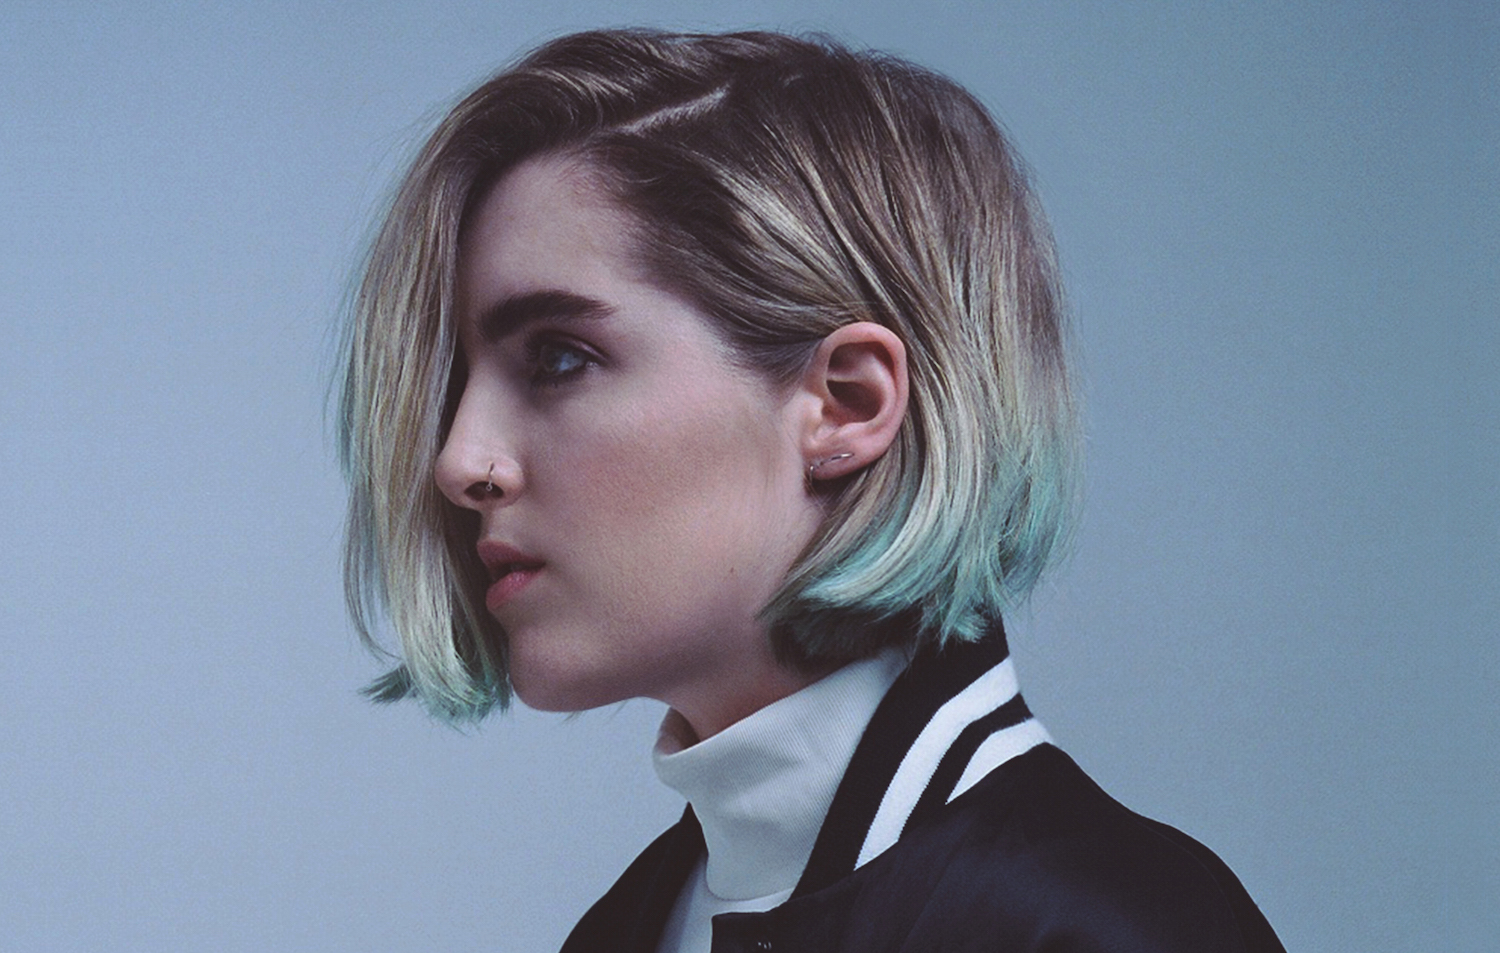 UK singer/songwriter/ producer Shura announced that her debut album 'Nothing's Real' is set for release later this Spring